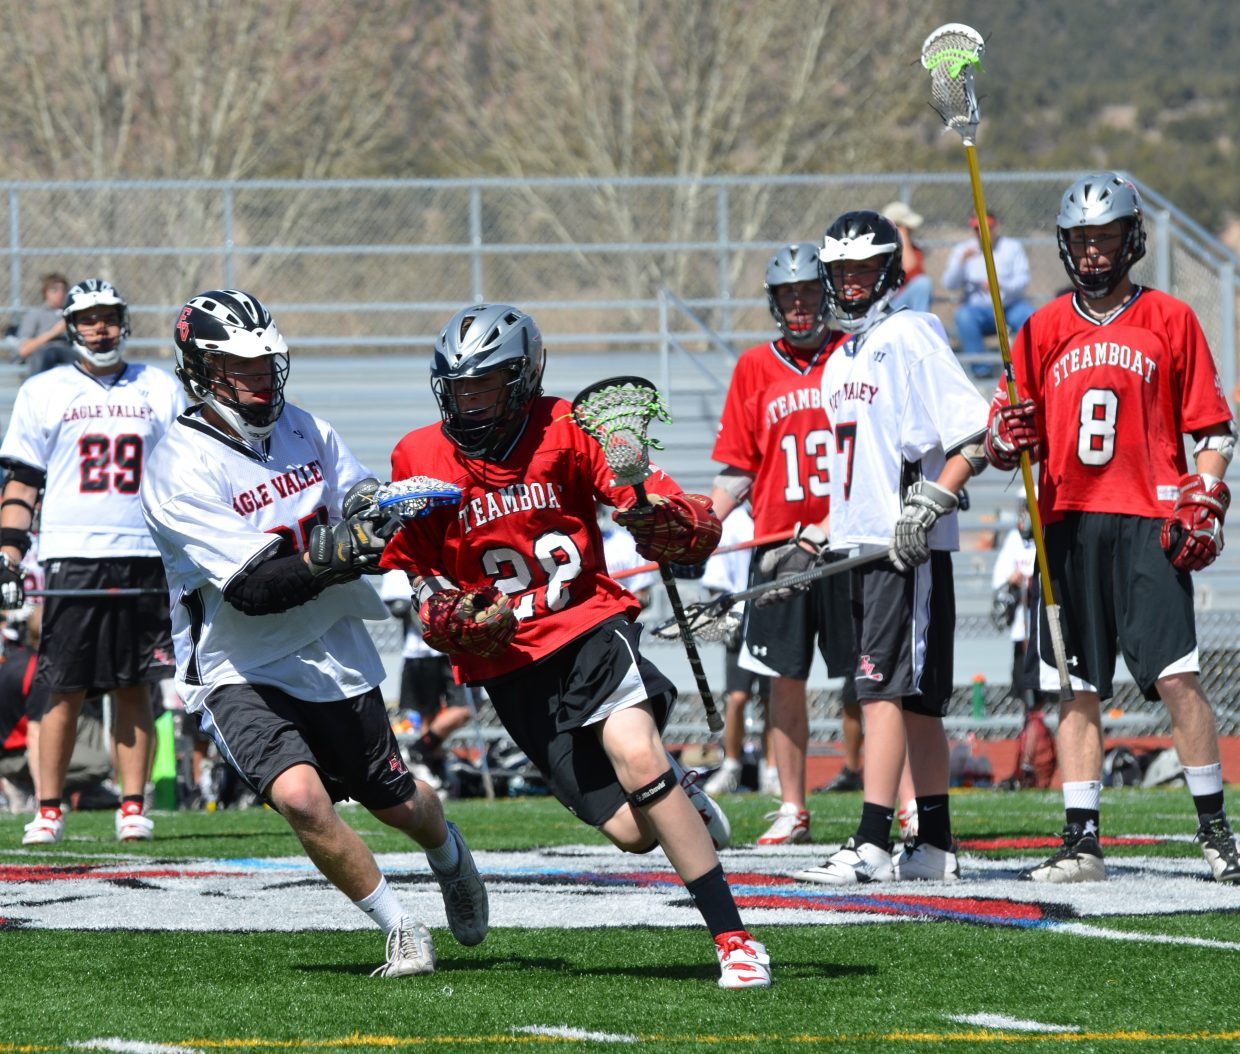 Steamboat lacrosse player Eric Sobeck gets the pass and heads downfield against Eagle Valley on Saturday.